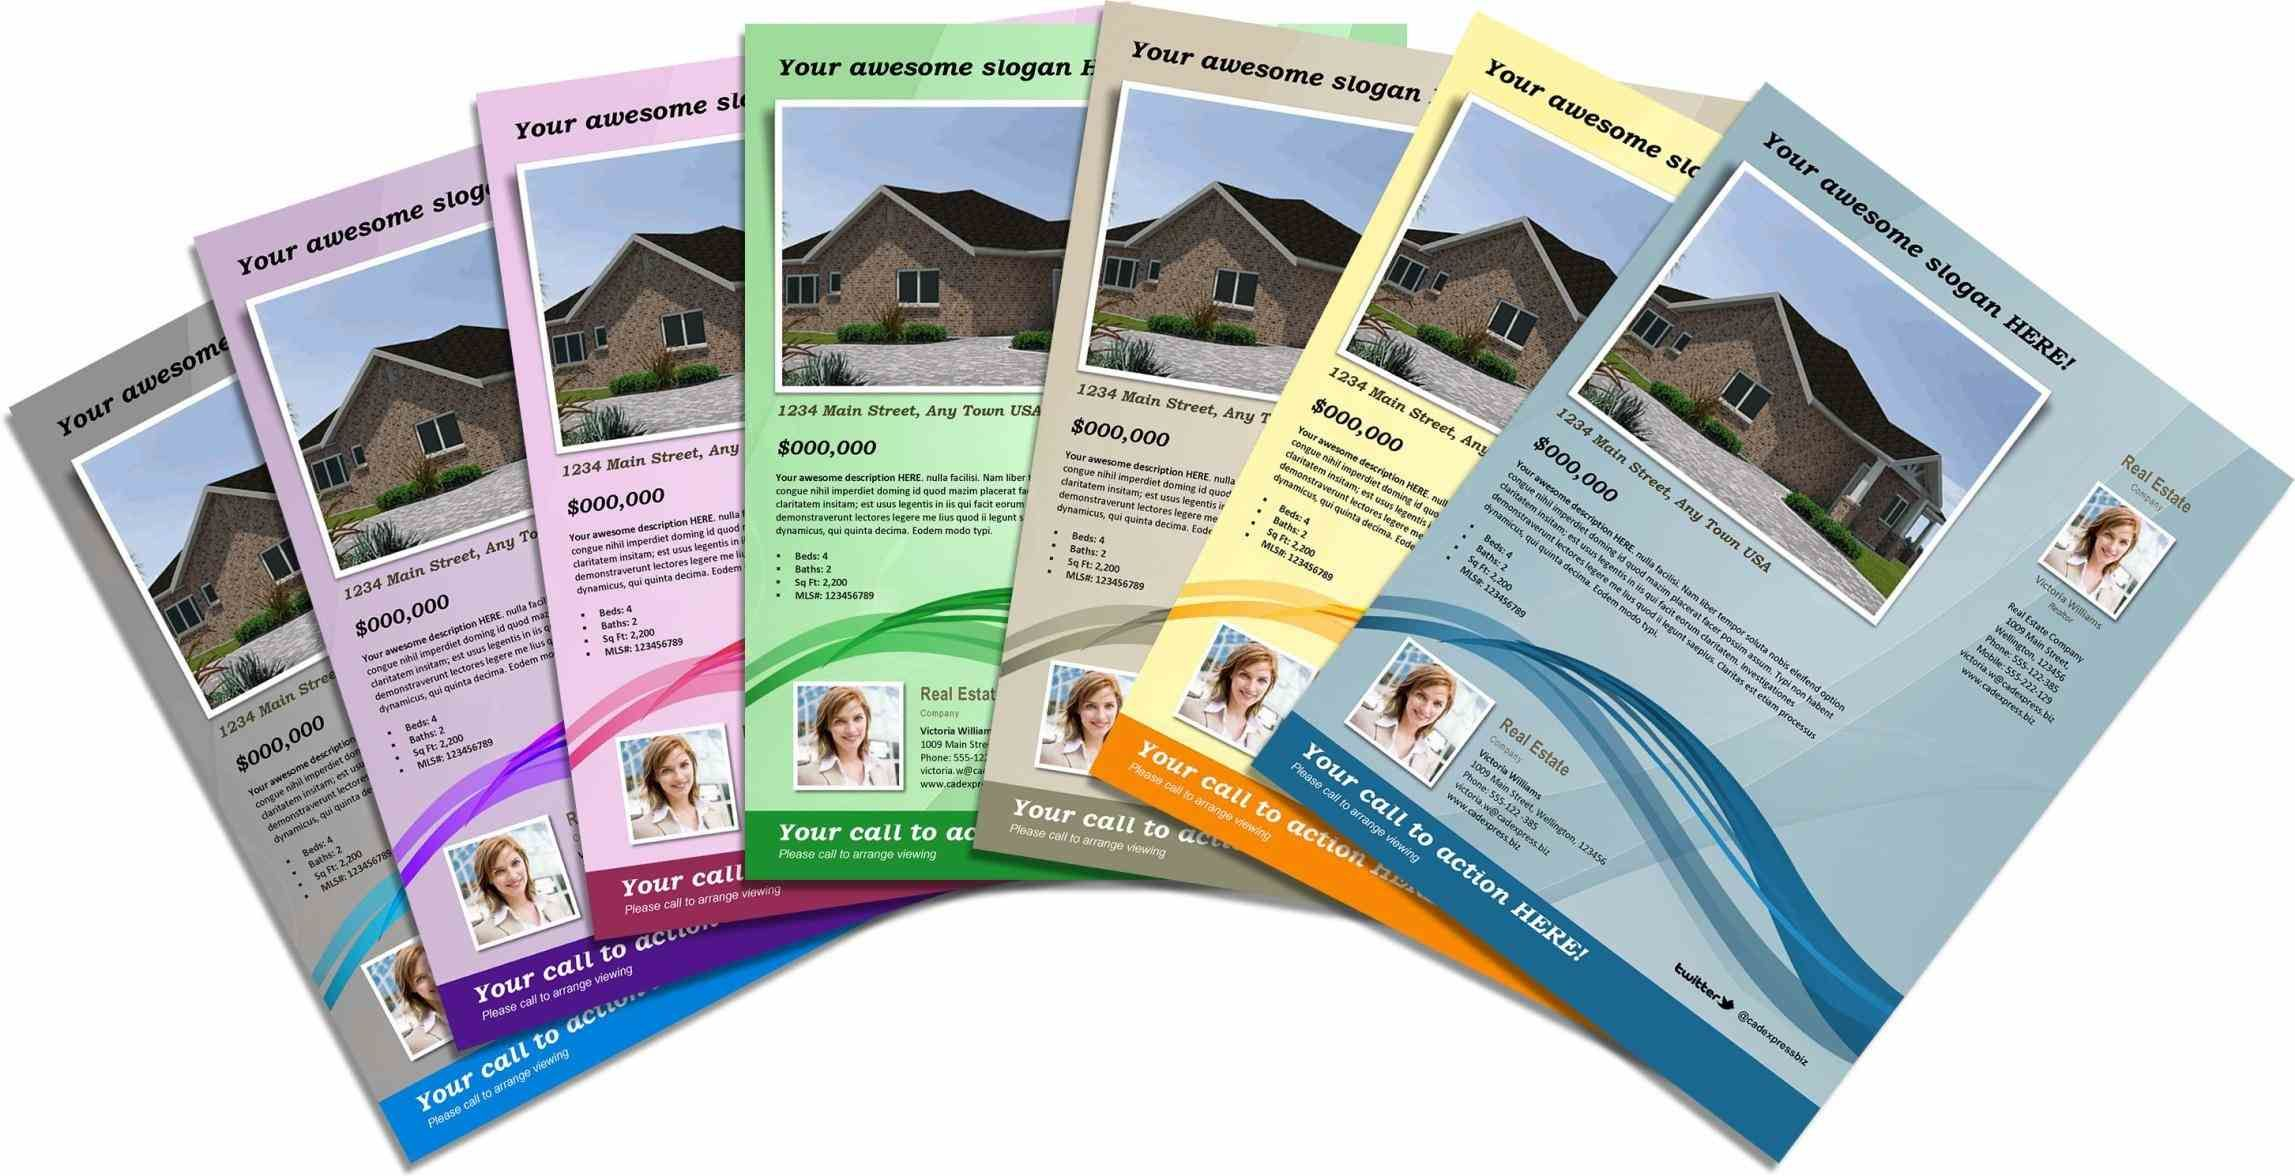 For Download From The Web They Easily Customizable Using Word - Real estate brochure template free download